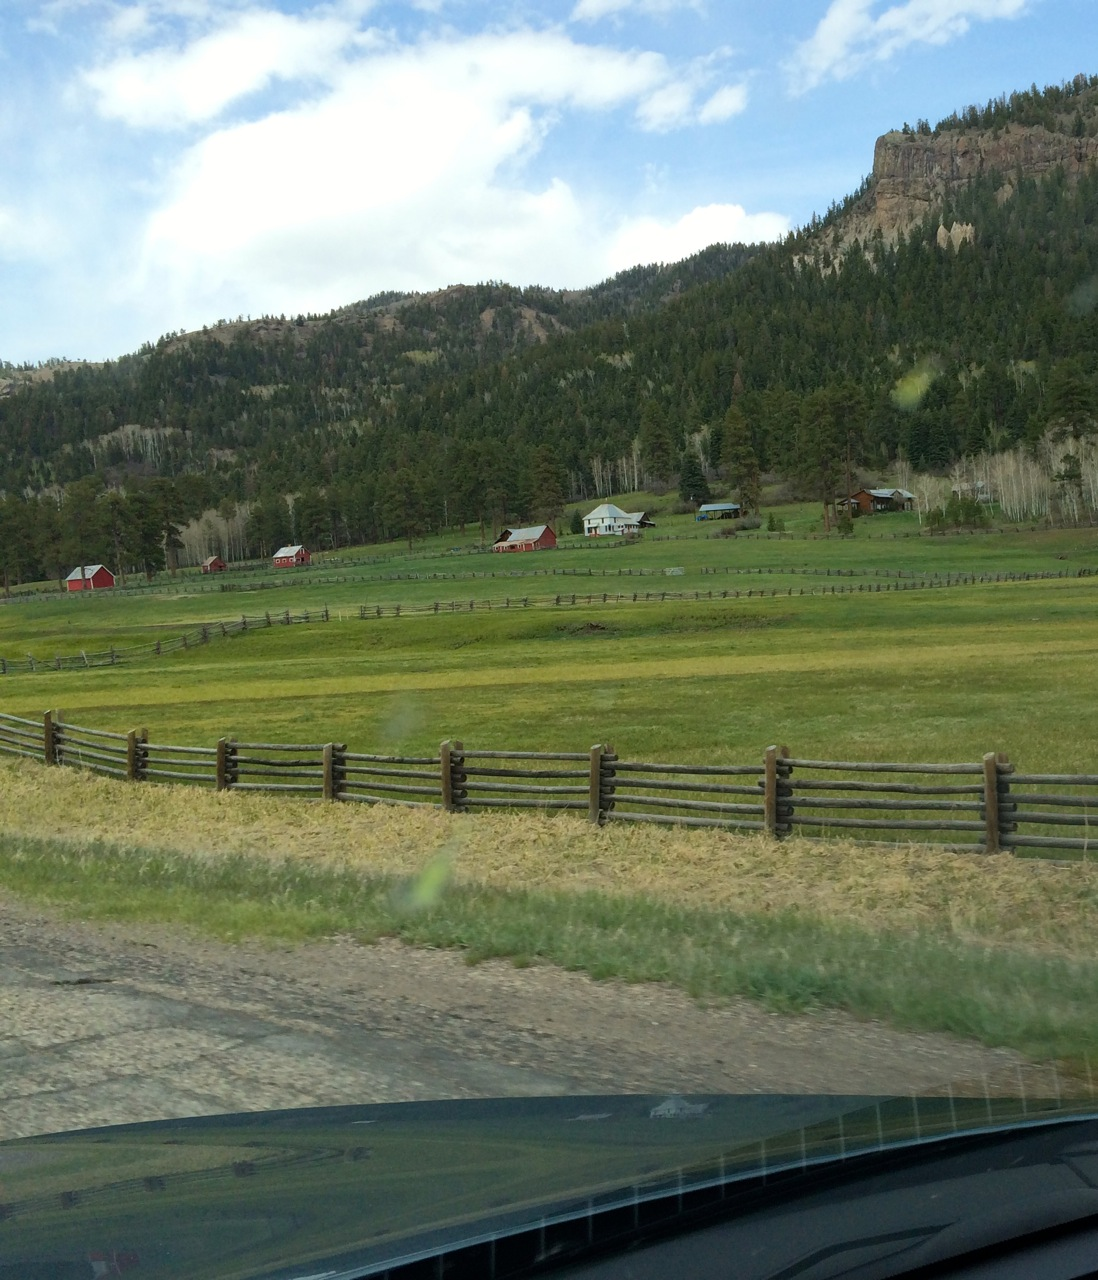 Historic ranch above Pagosa Springs. Not the pattern: meadows in the valley bottom on glacial soil, forest on the volcanic layers of the mountainsides.